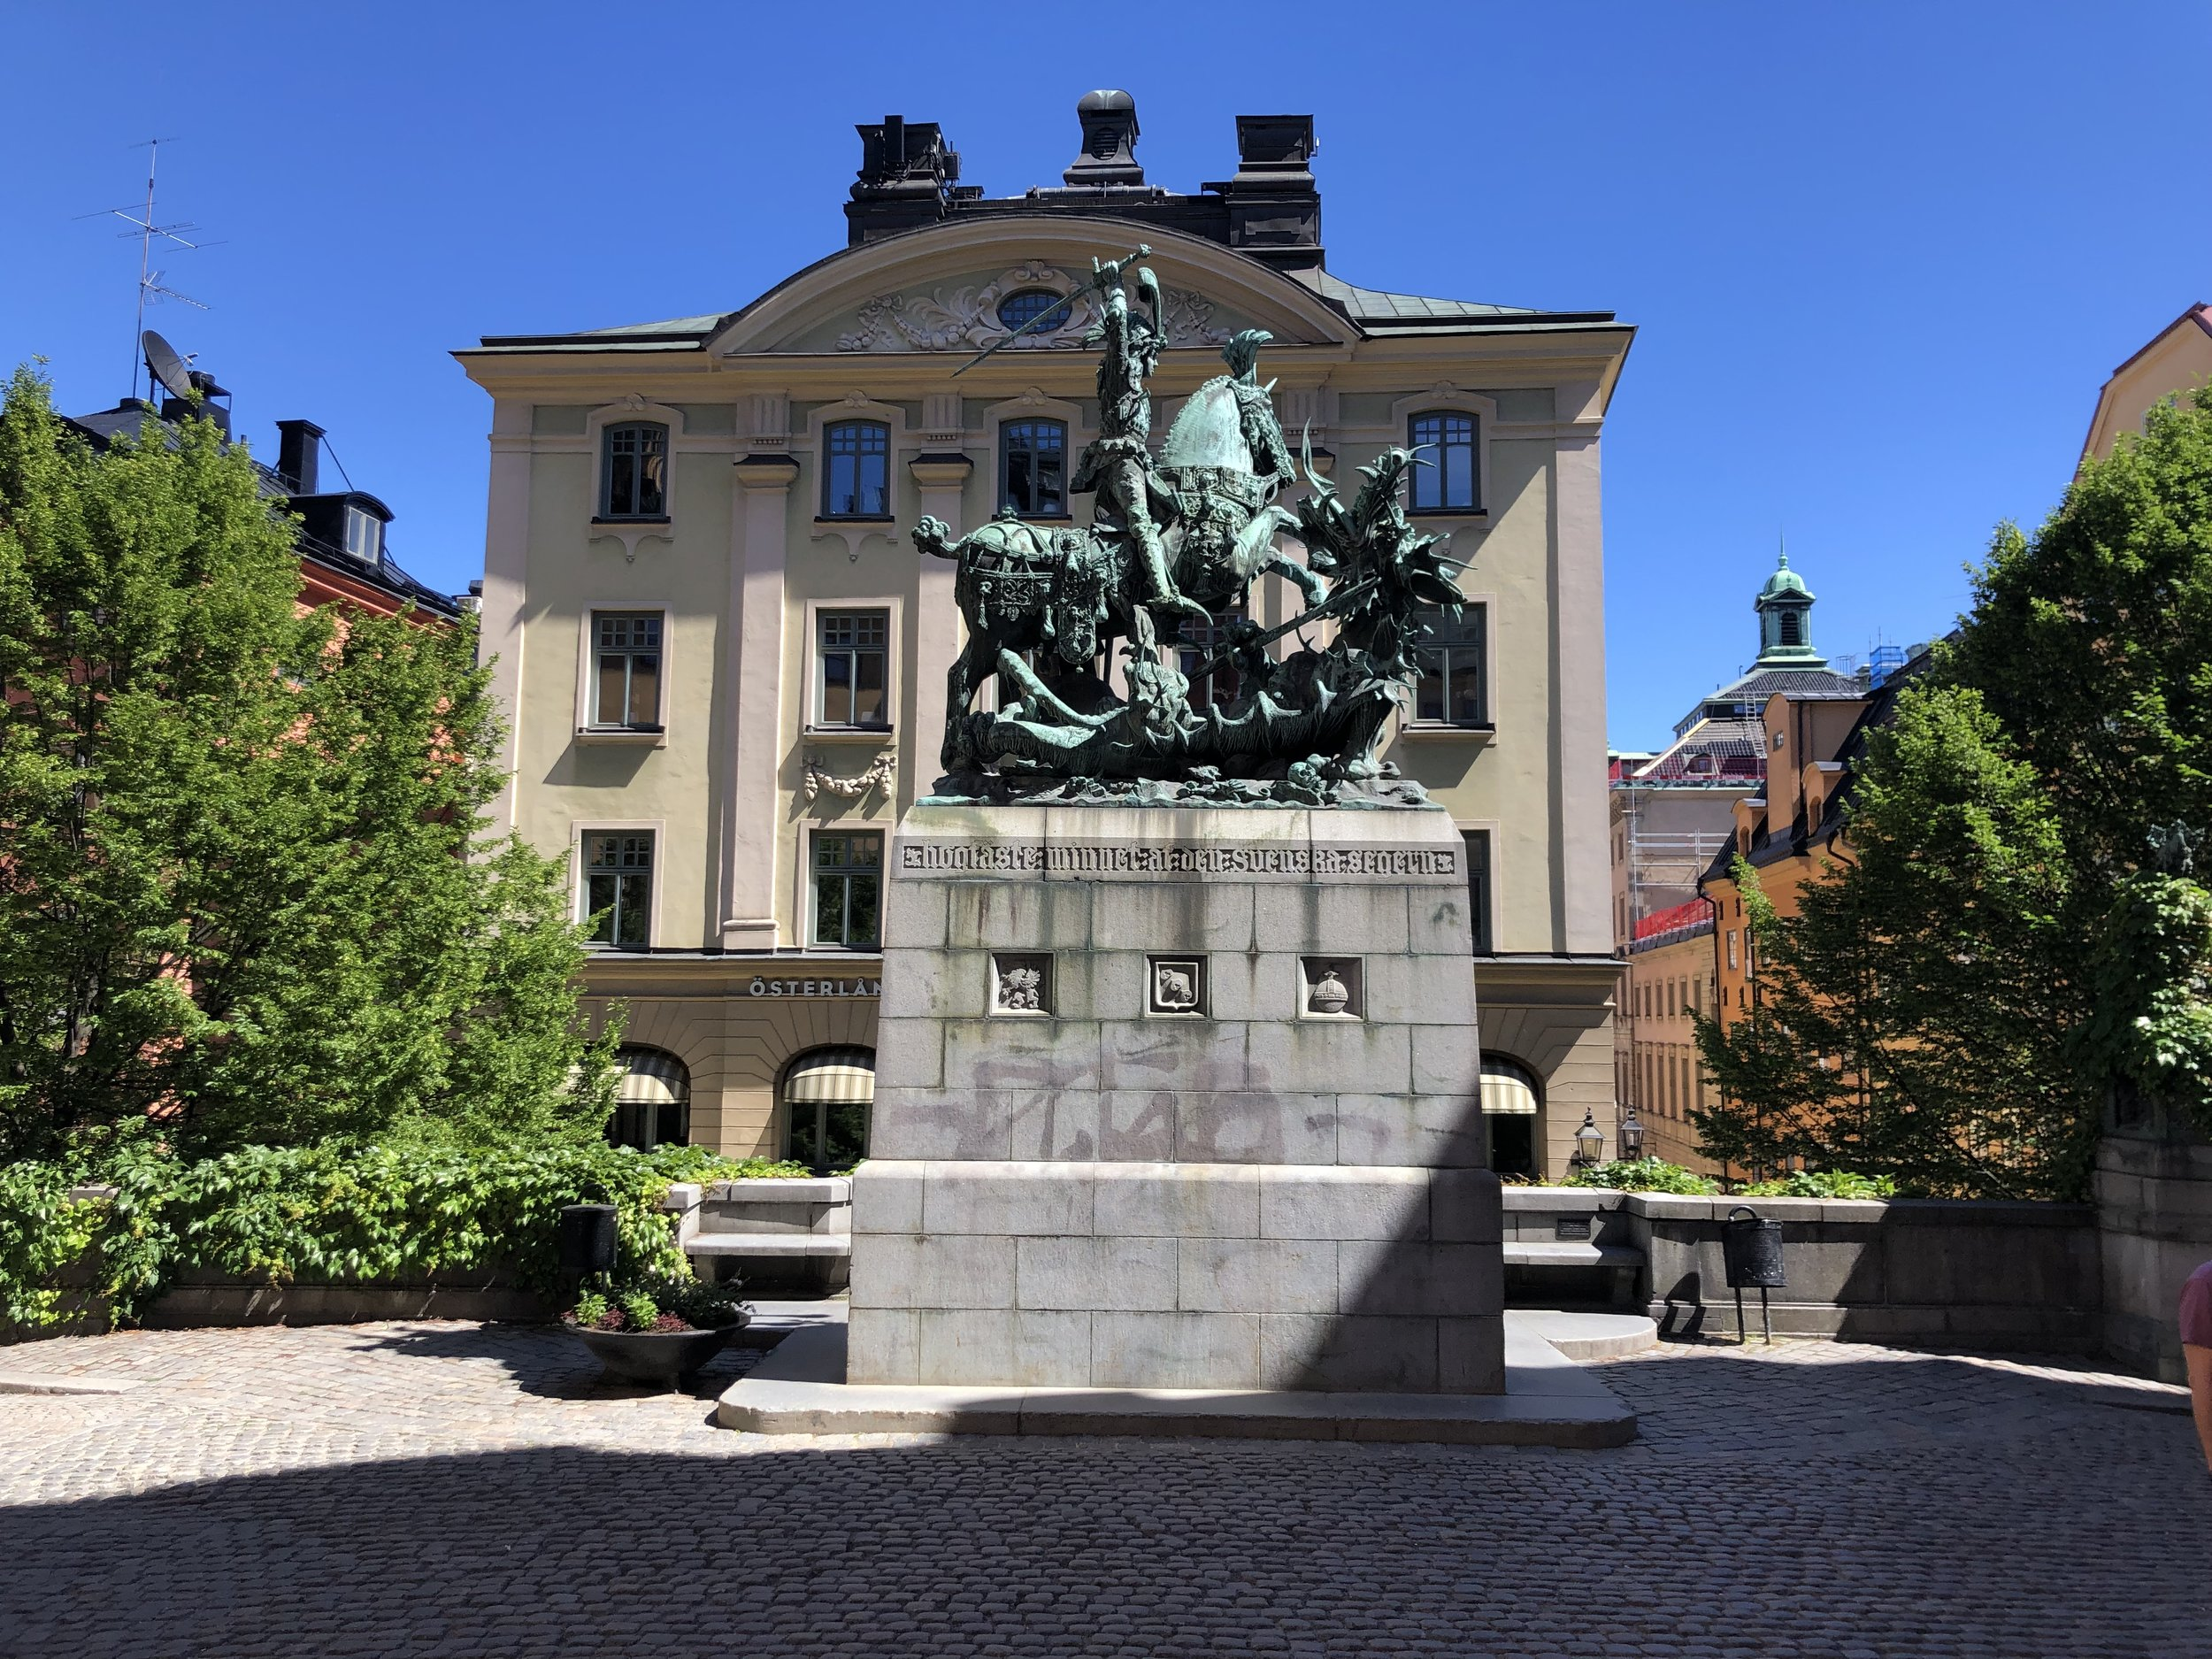 Statue of St George and the Dragon in Gamla Stad.